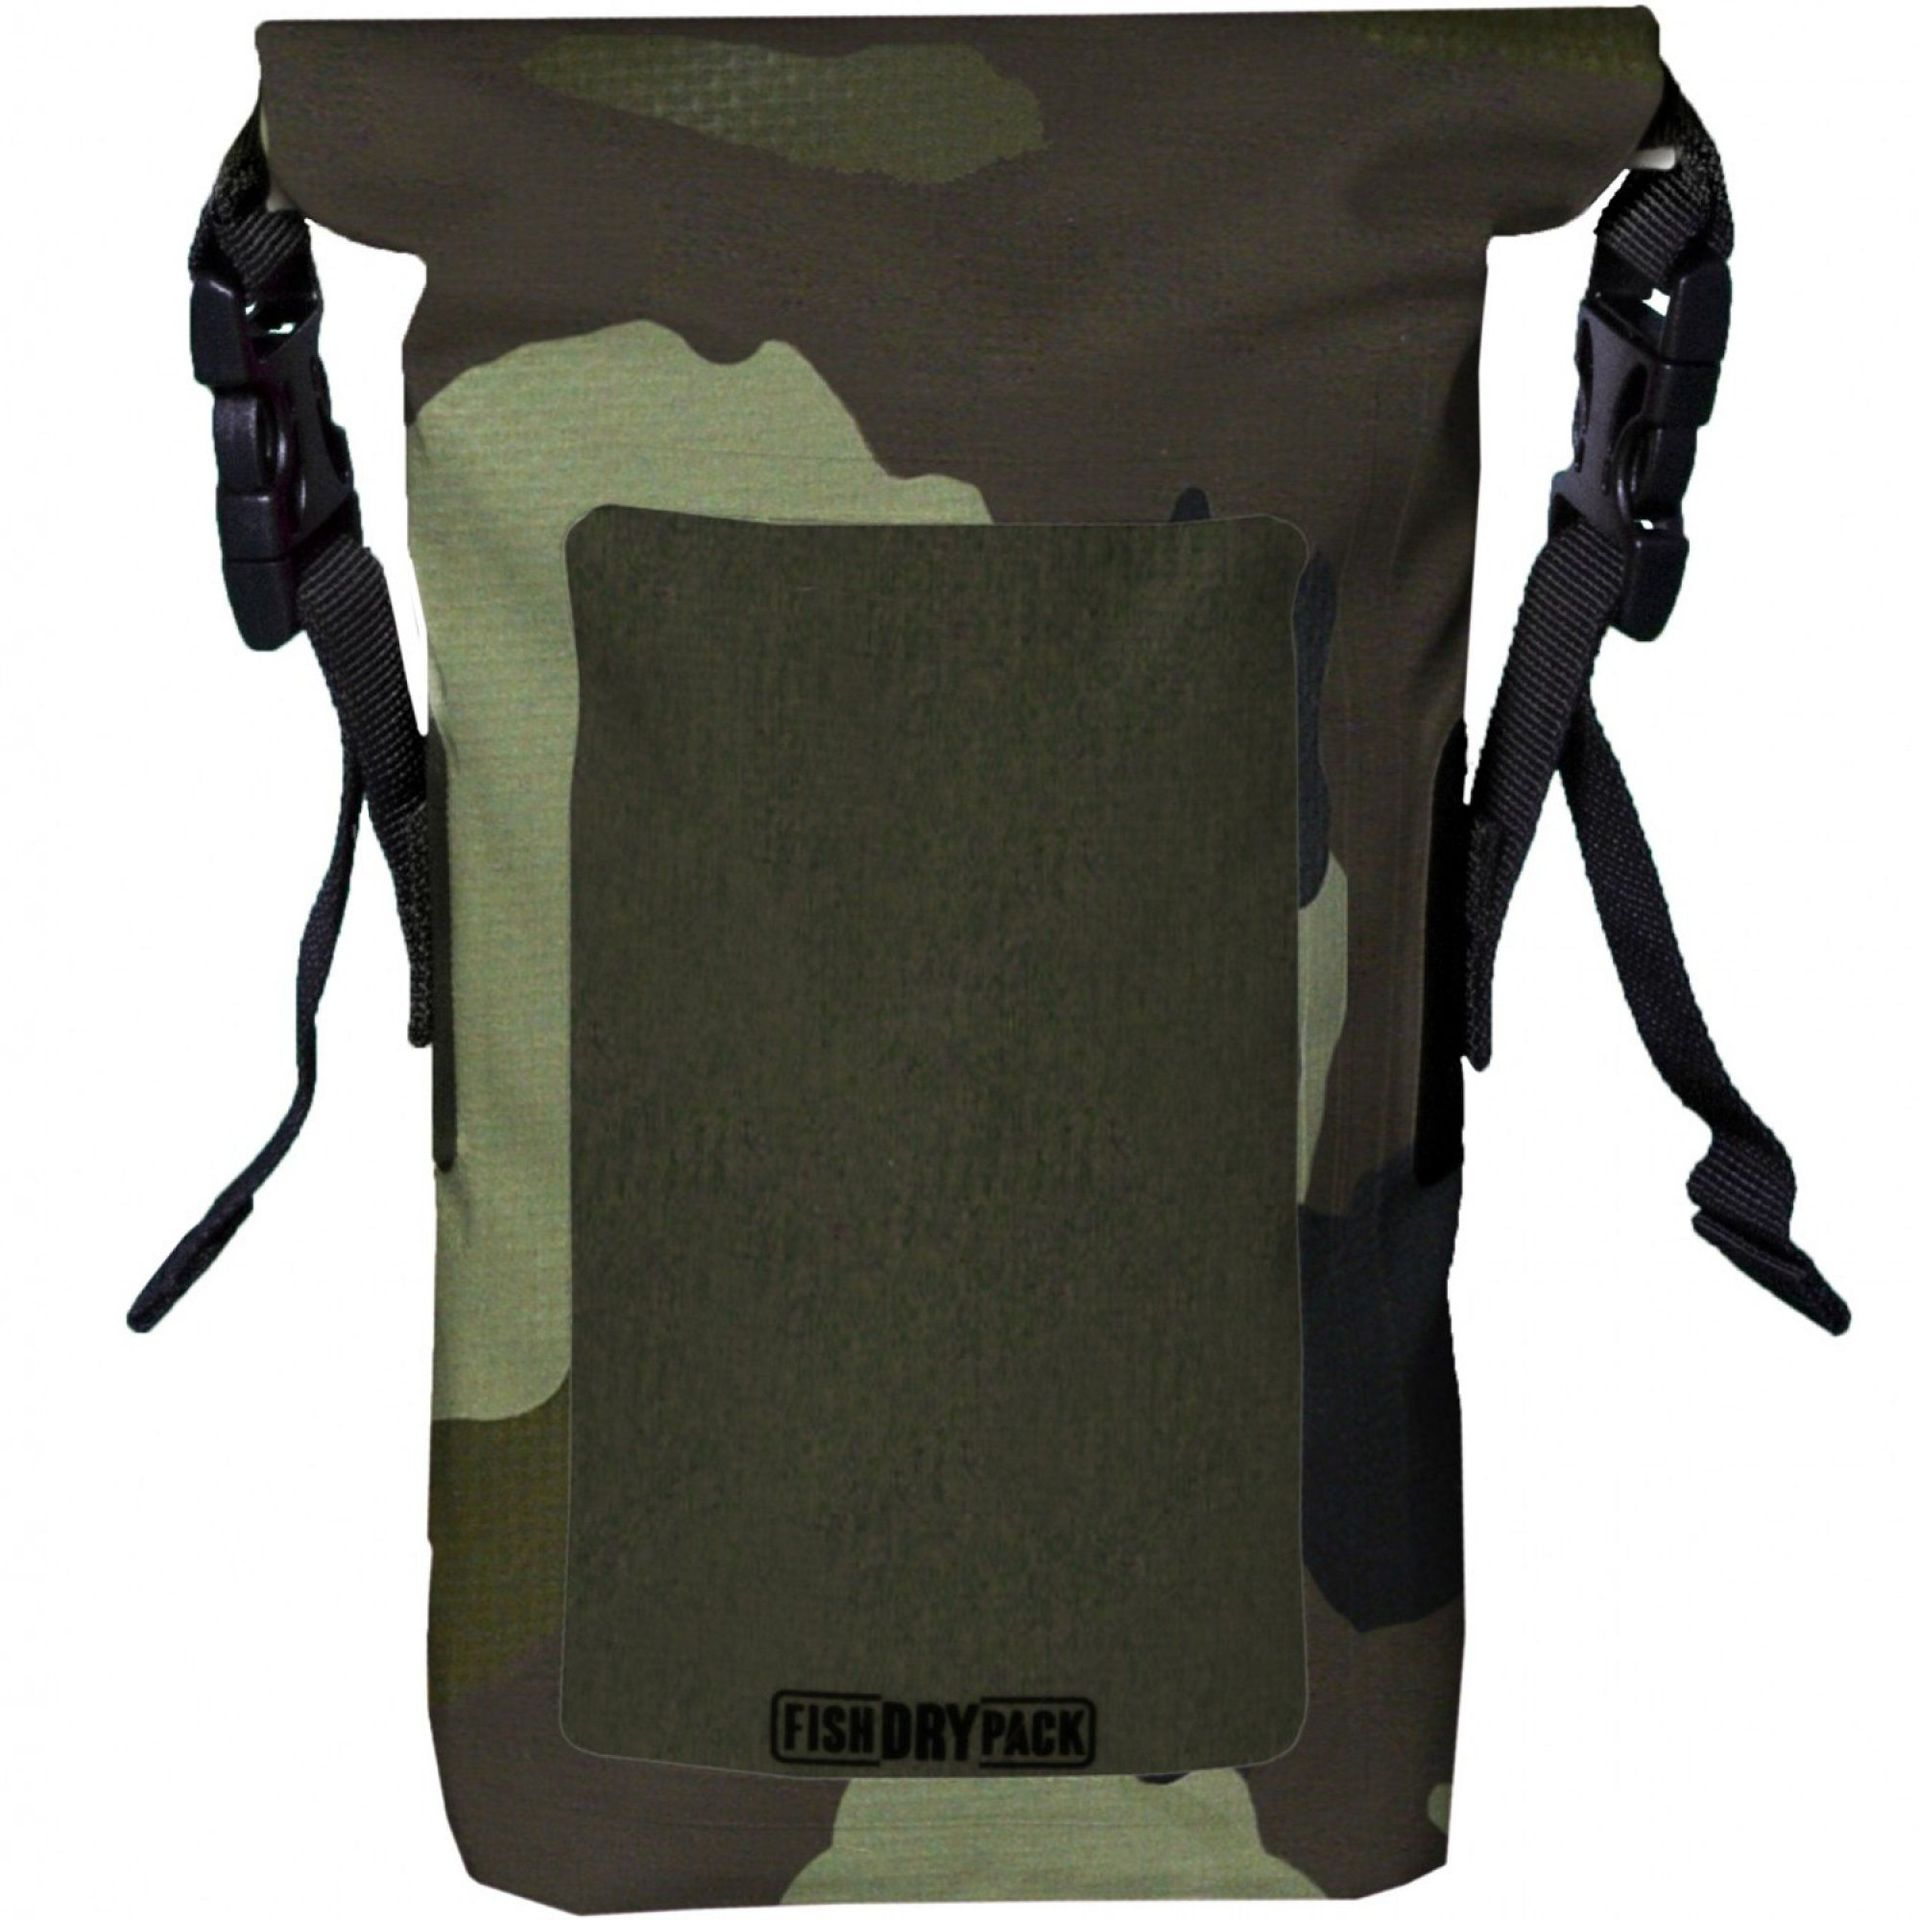 SASZETKA FISH SKATEBOARDS FISH DRY PACK MINI CAMO